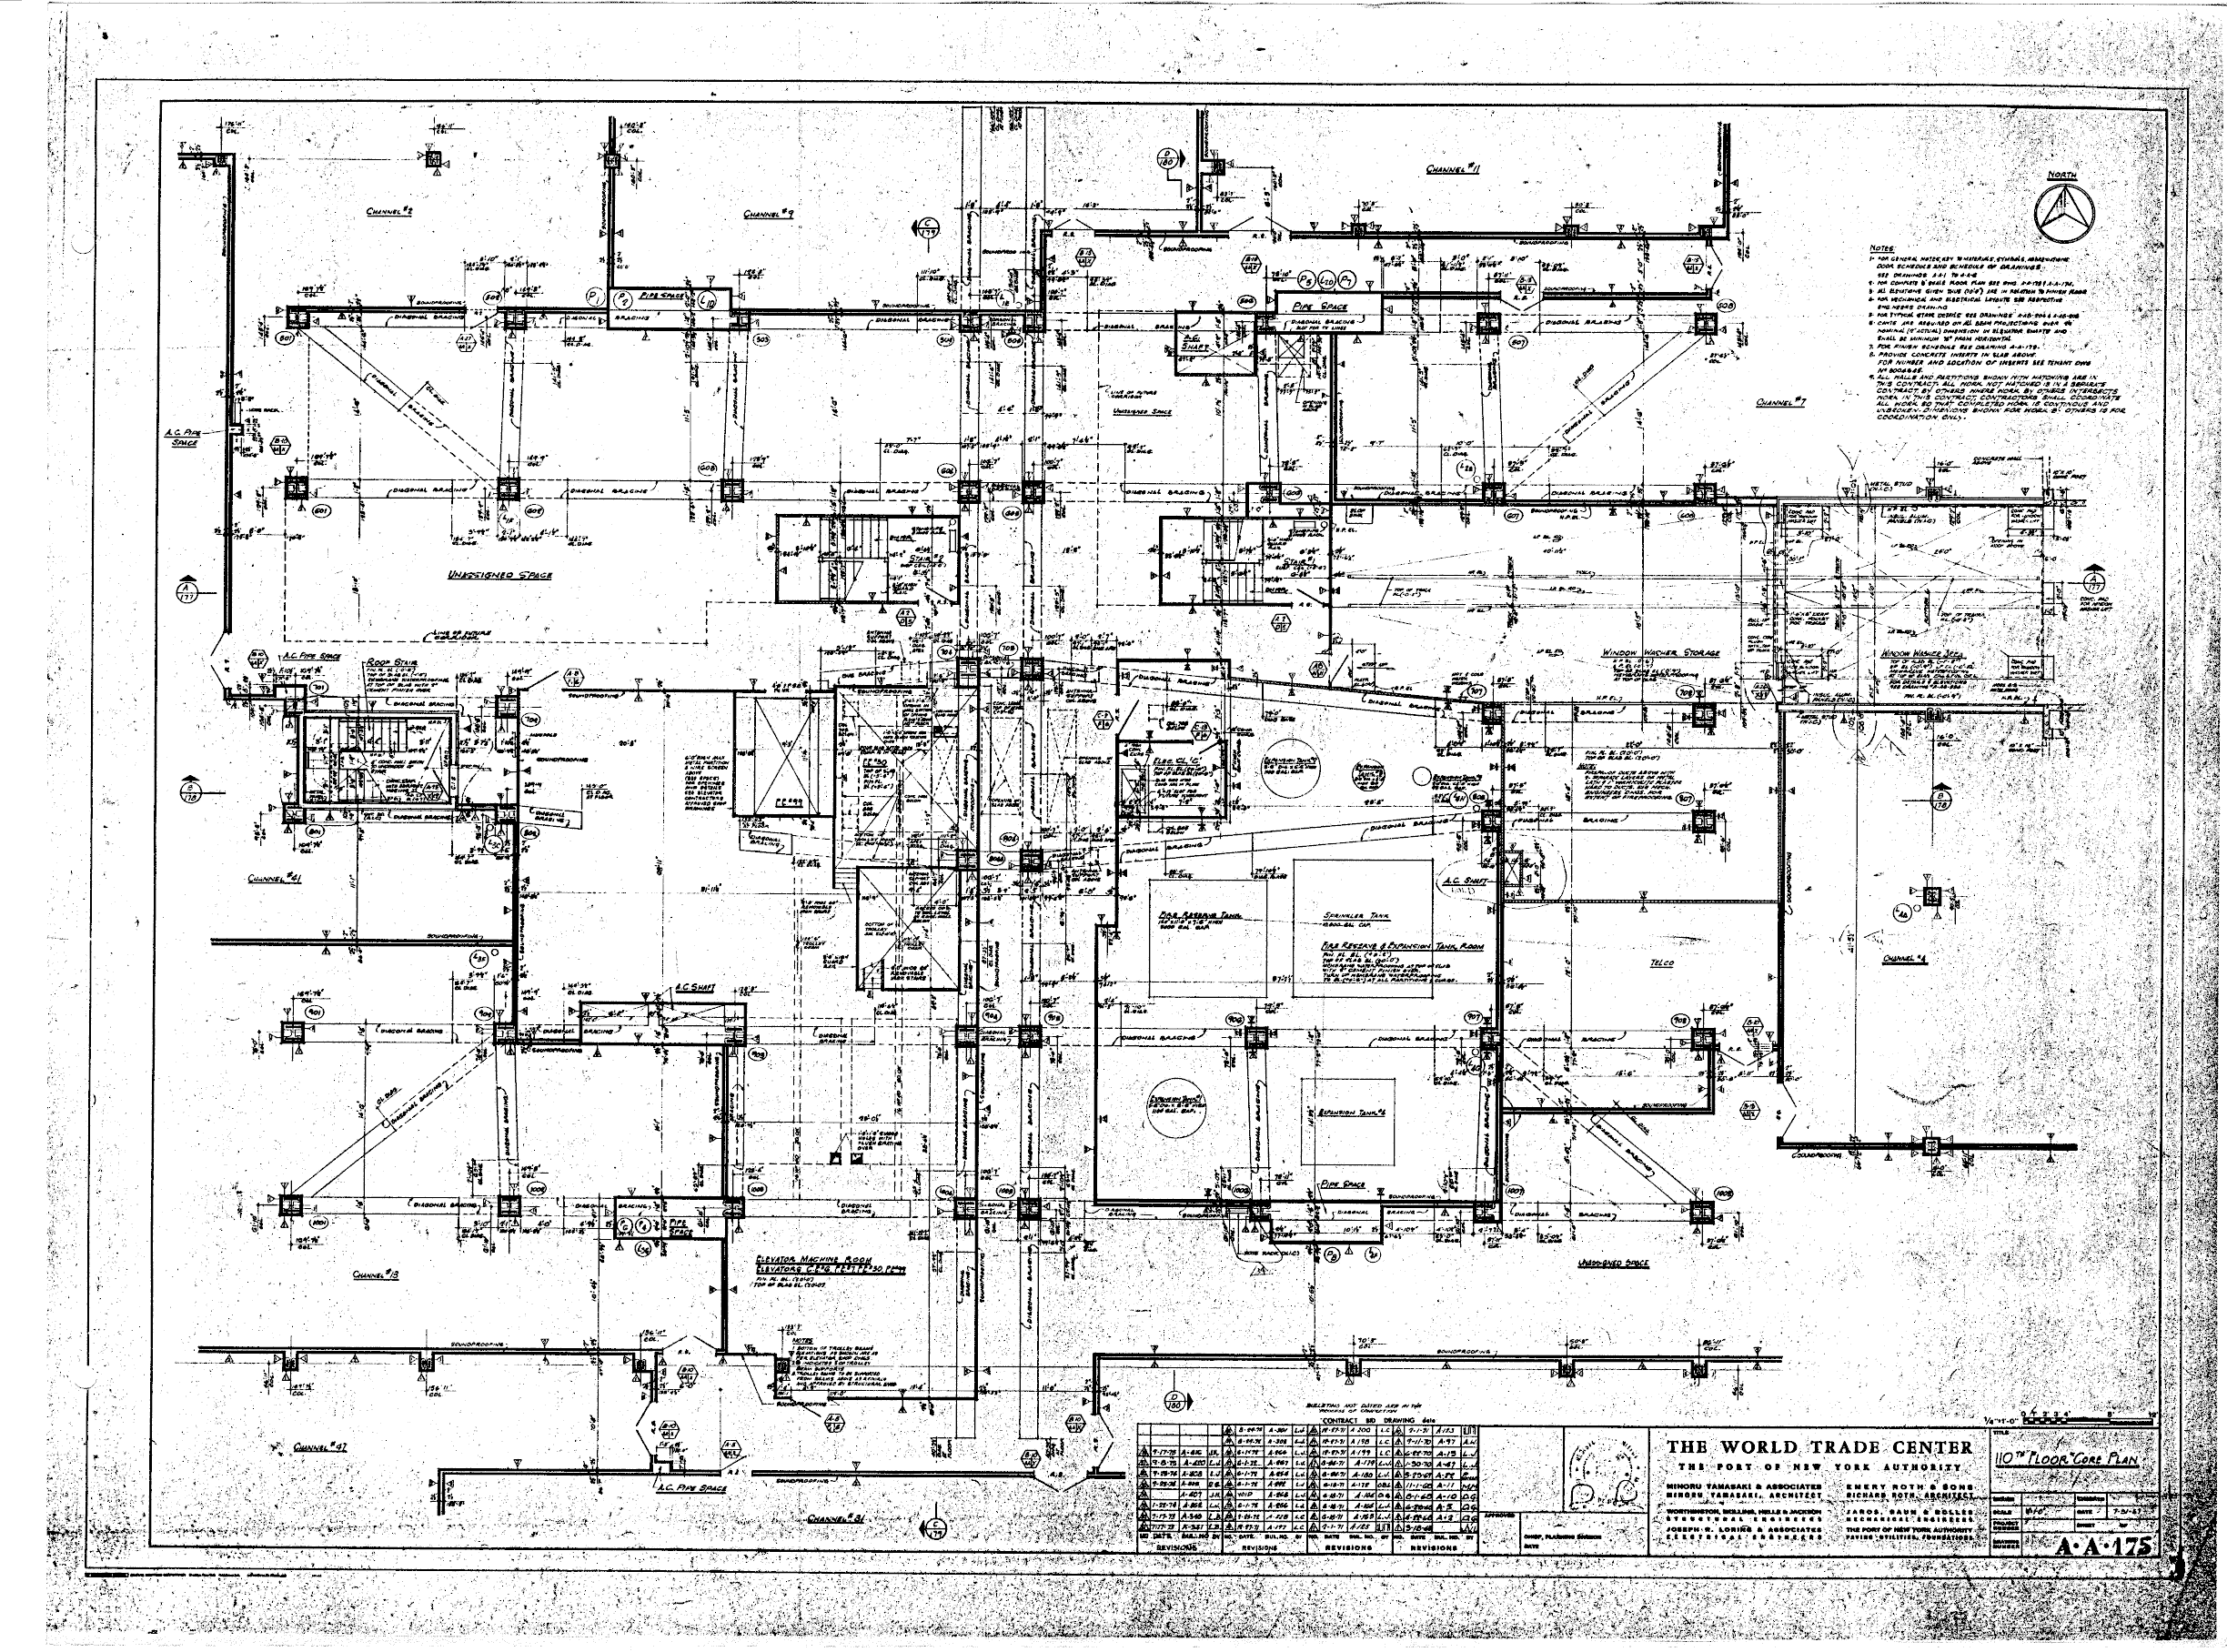 North tower blueprints for Print architectural plans